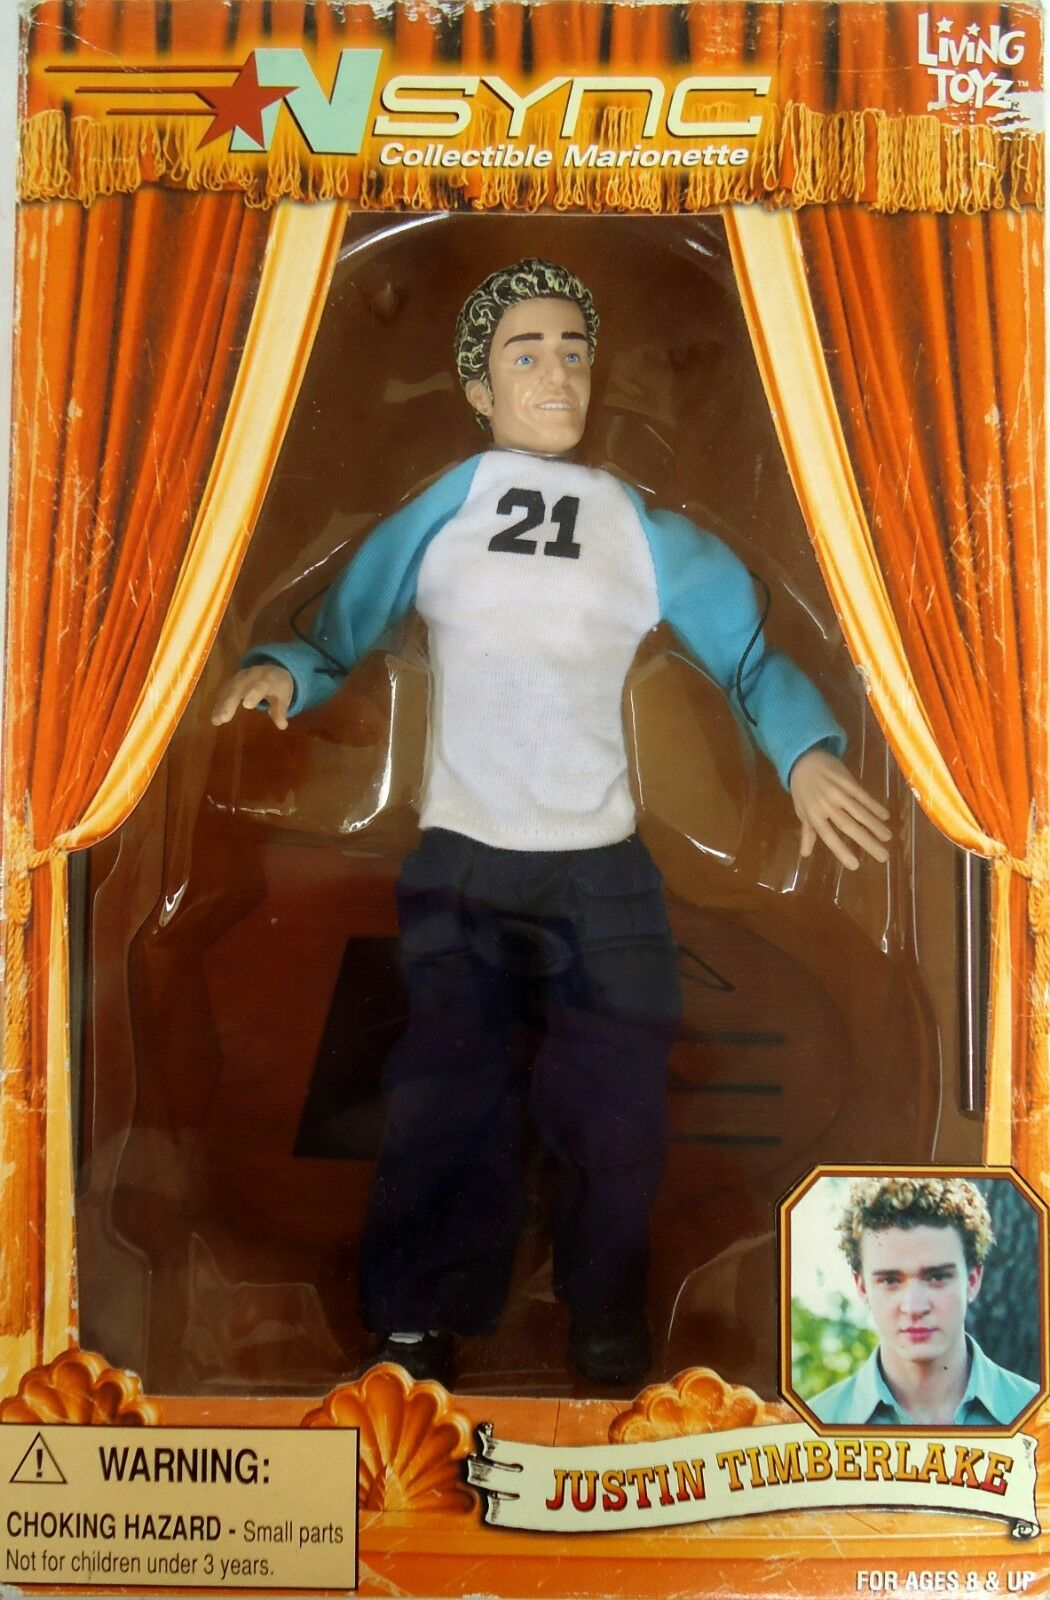 Nsync Collectable Marionette Justin Timberlake (2000) (2000) (2000) Living Toyz-Collectable 9c0782